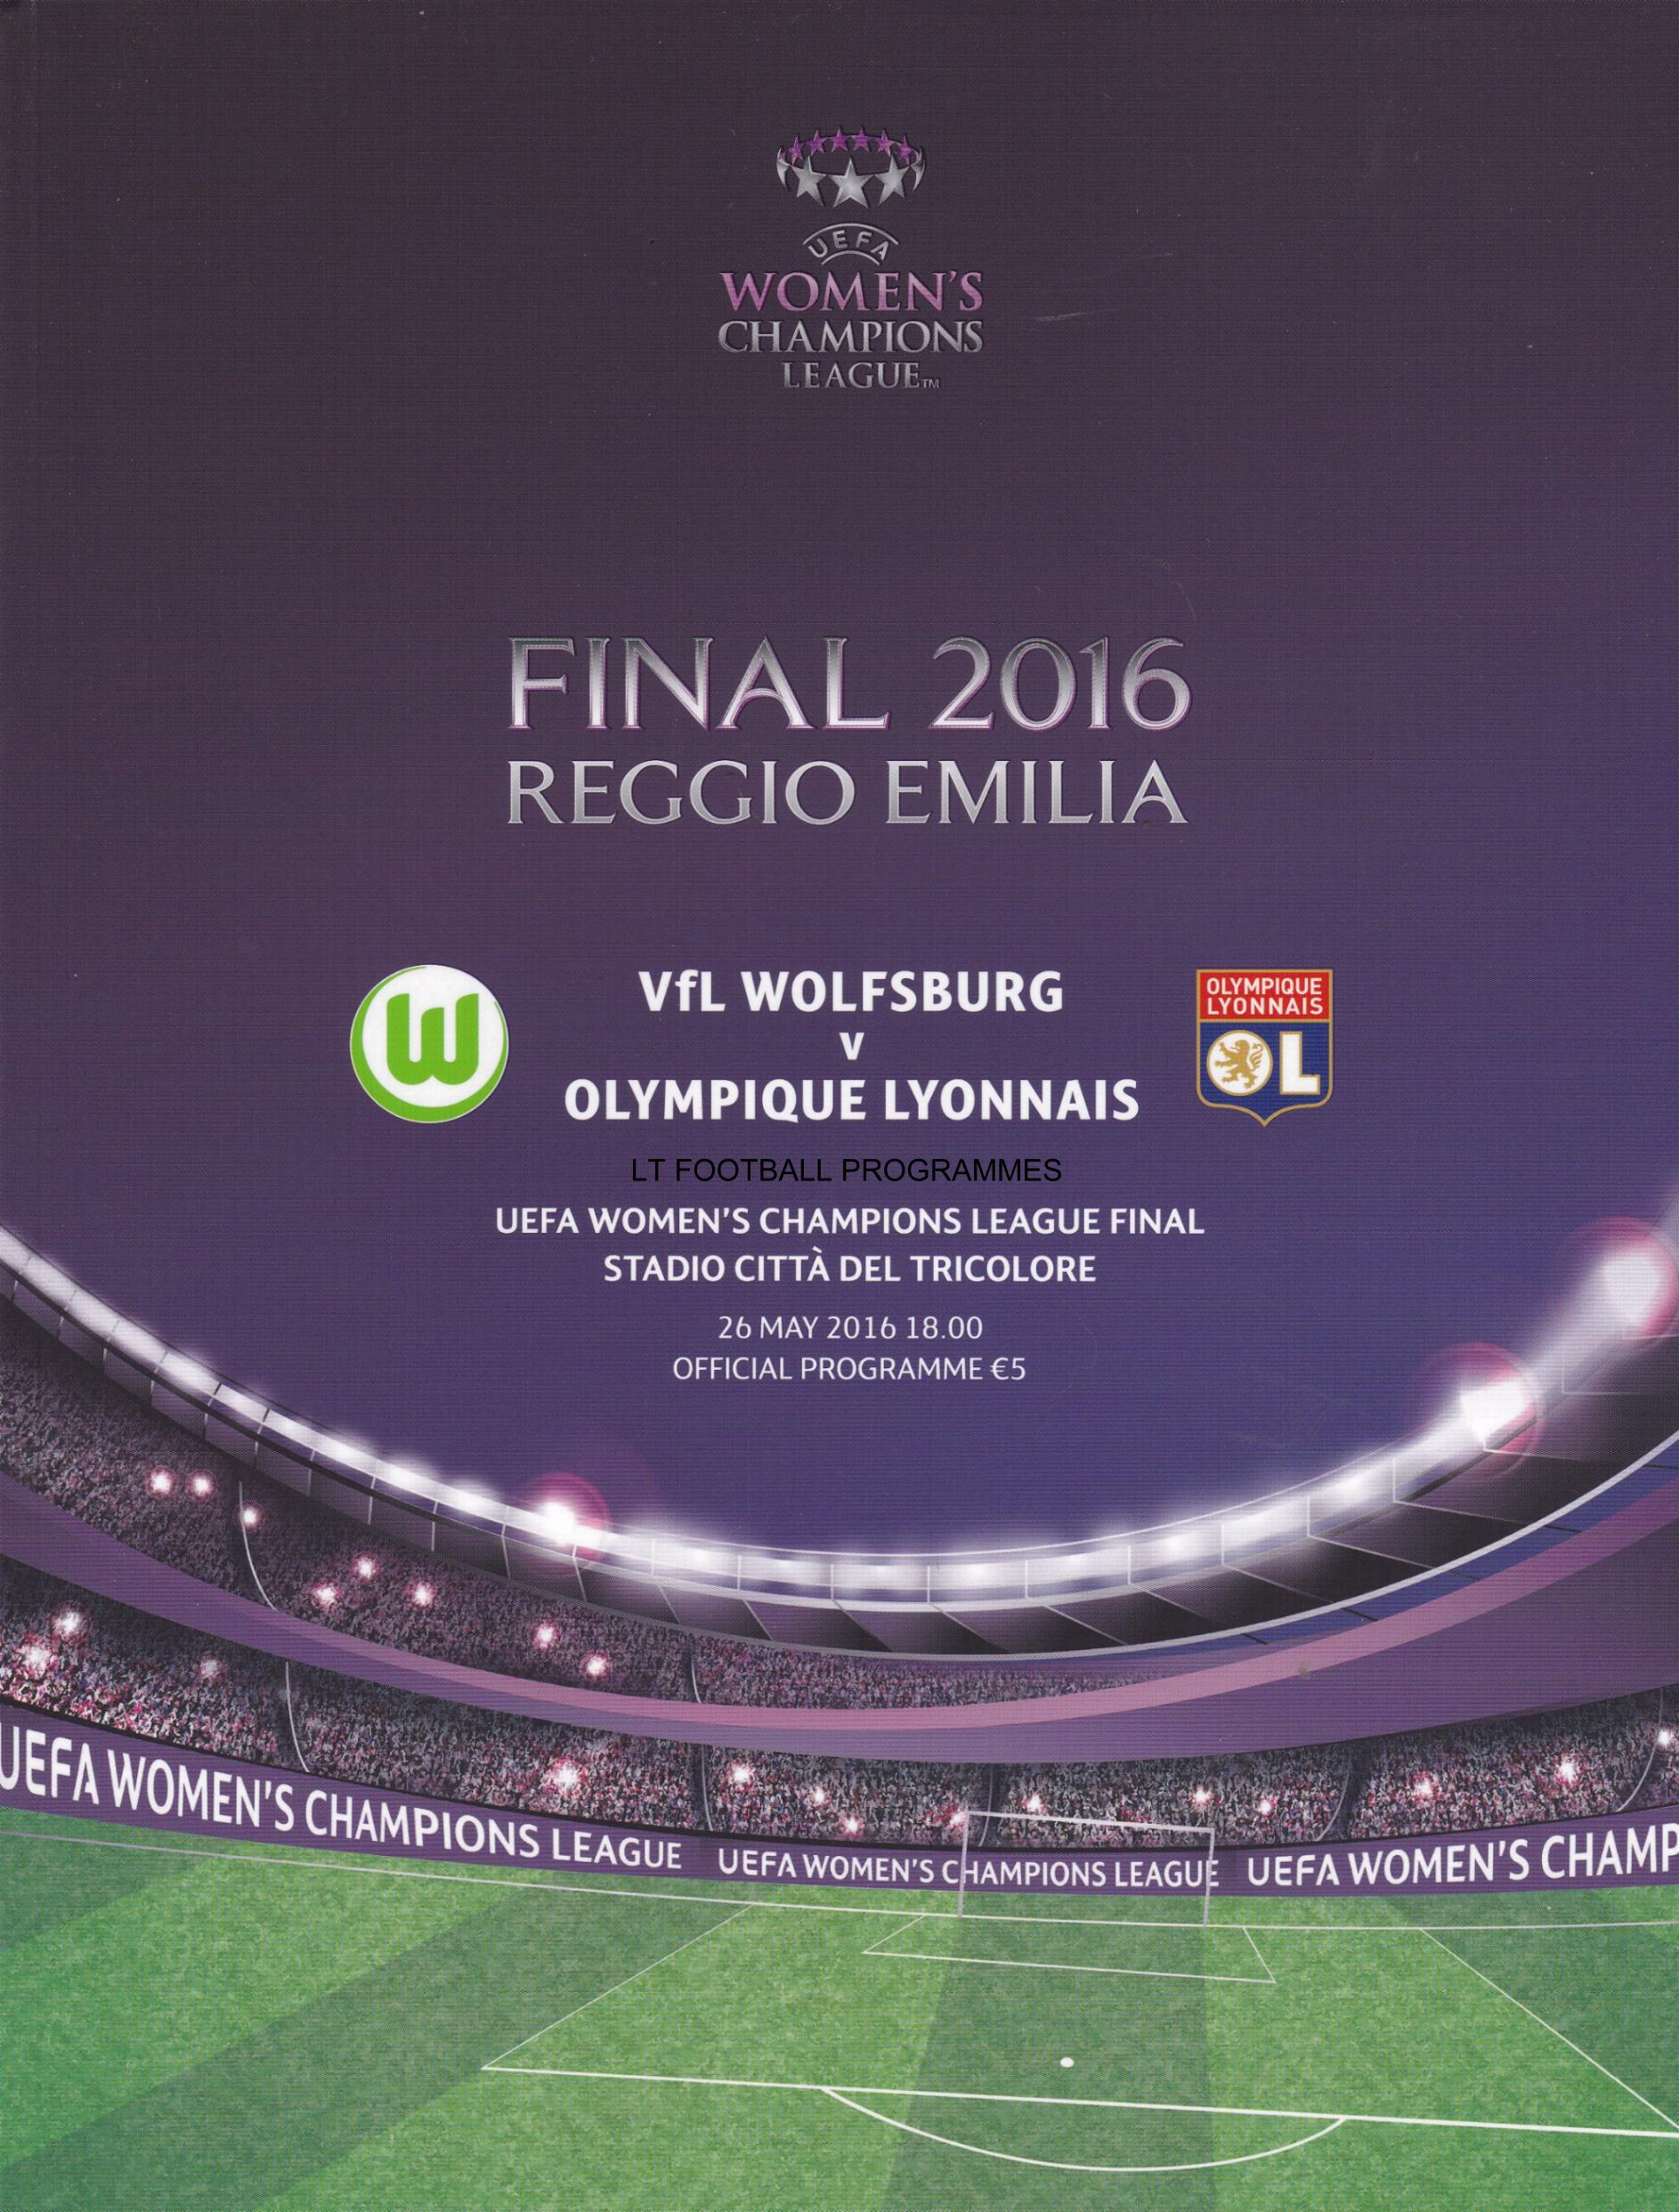 2016 WOMENS CHAMPIONS LEAGUE FINAL - WOLFSBURG v LYON